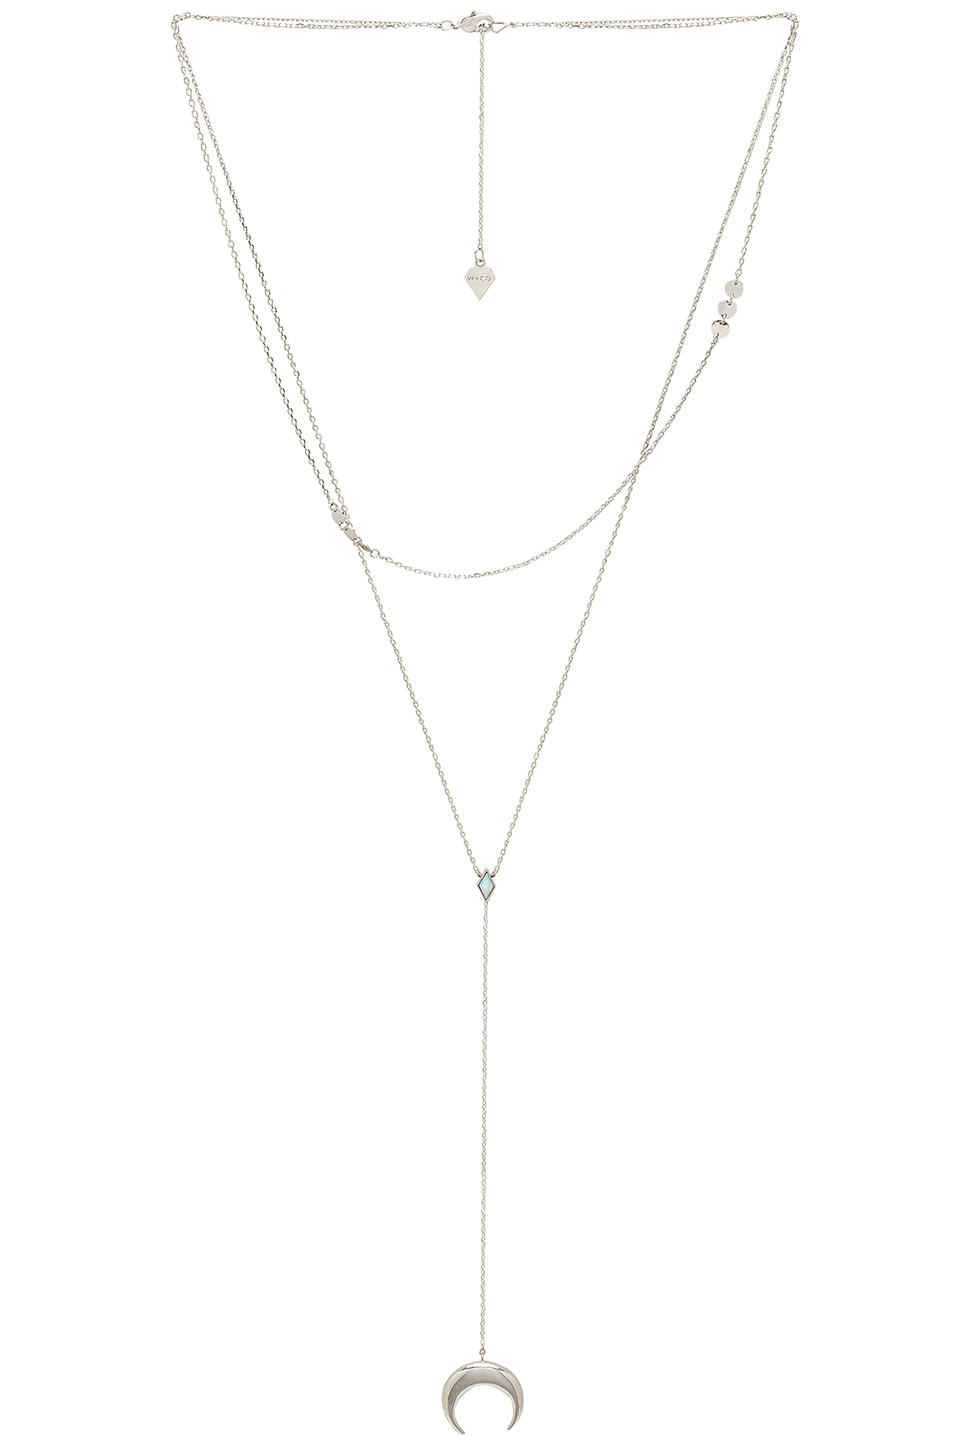 Wanderlust + Co Crescent Diamante Necklace in Silver